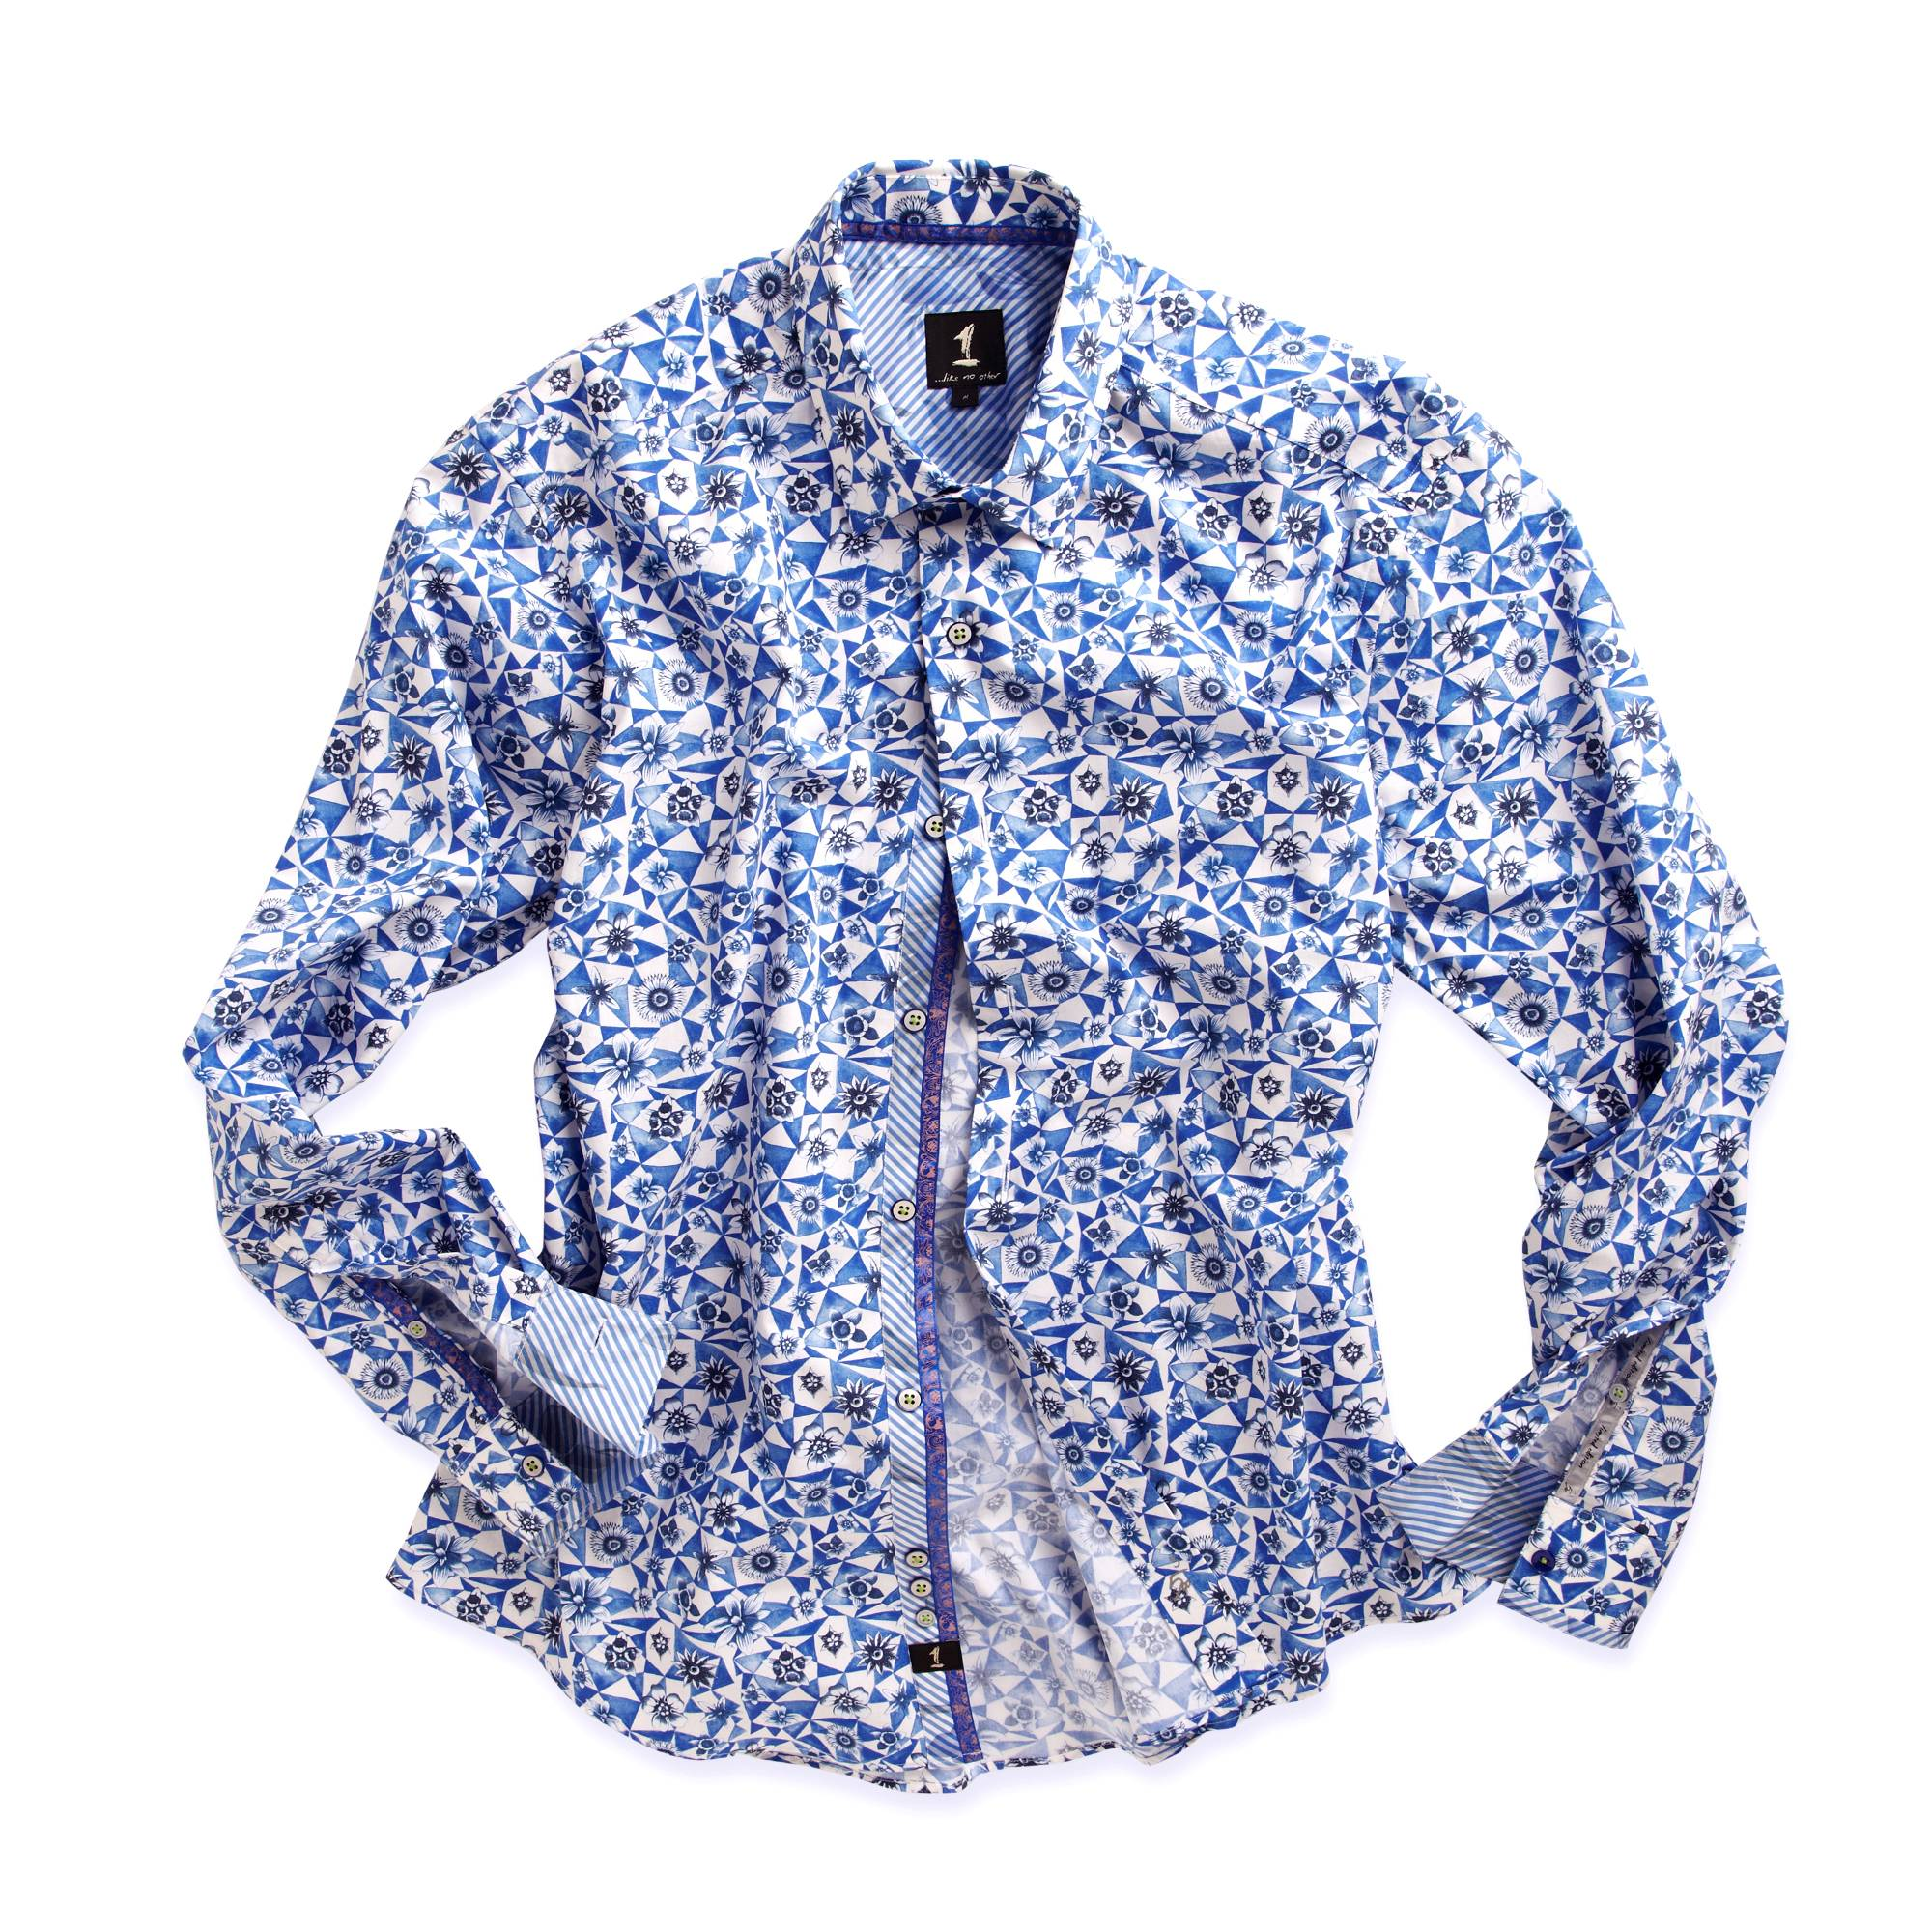 Shirt design of 2014 - Flora Shirt This Print Forms The Central Theme To Our Spring Summer 2014 Collection The Geo Floral Design Is Easy To Wear With Denim Creating A Relaxed